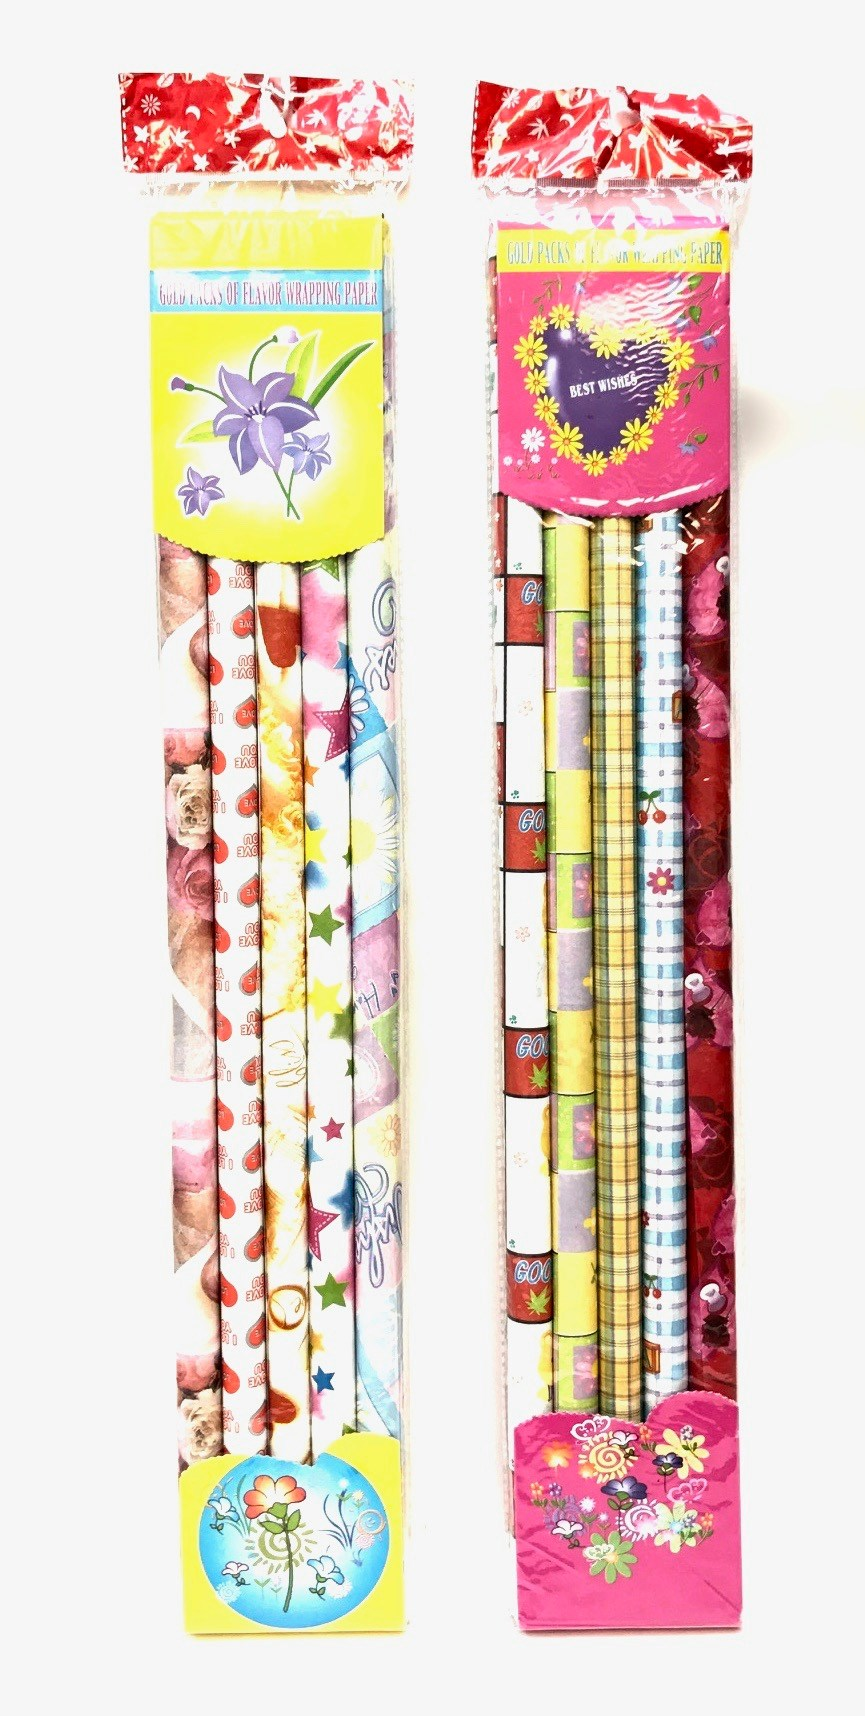 Gift Wrapping Paper 20x30 (5 Pack)